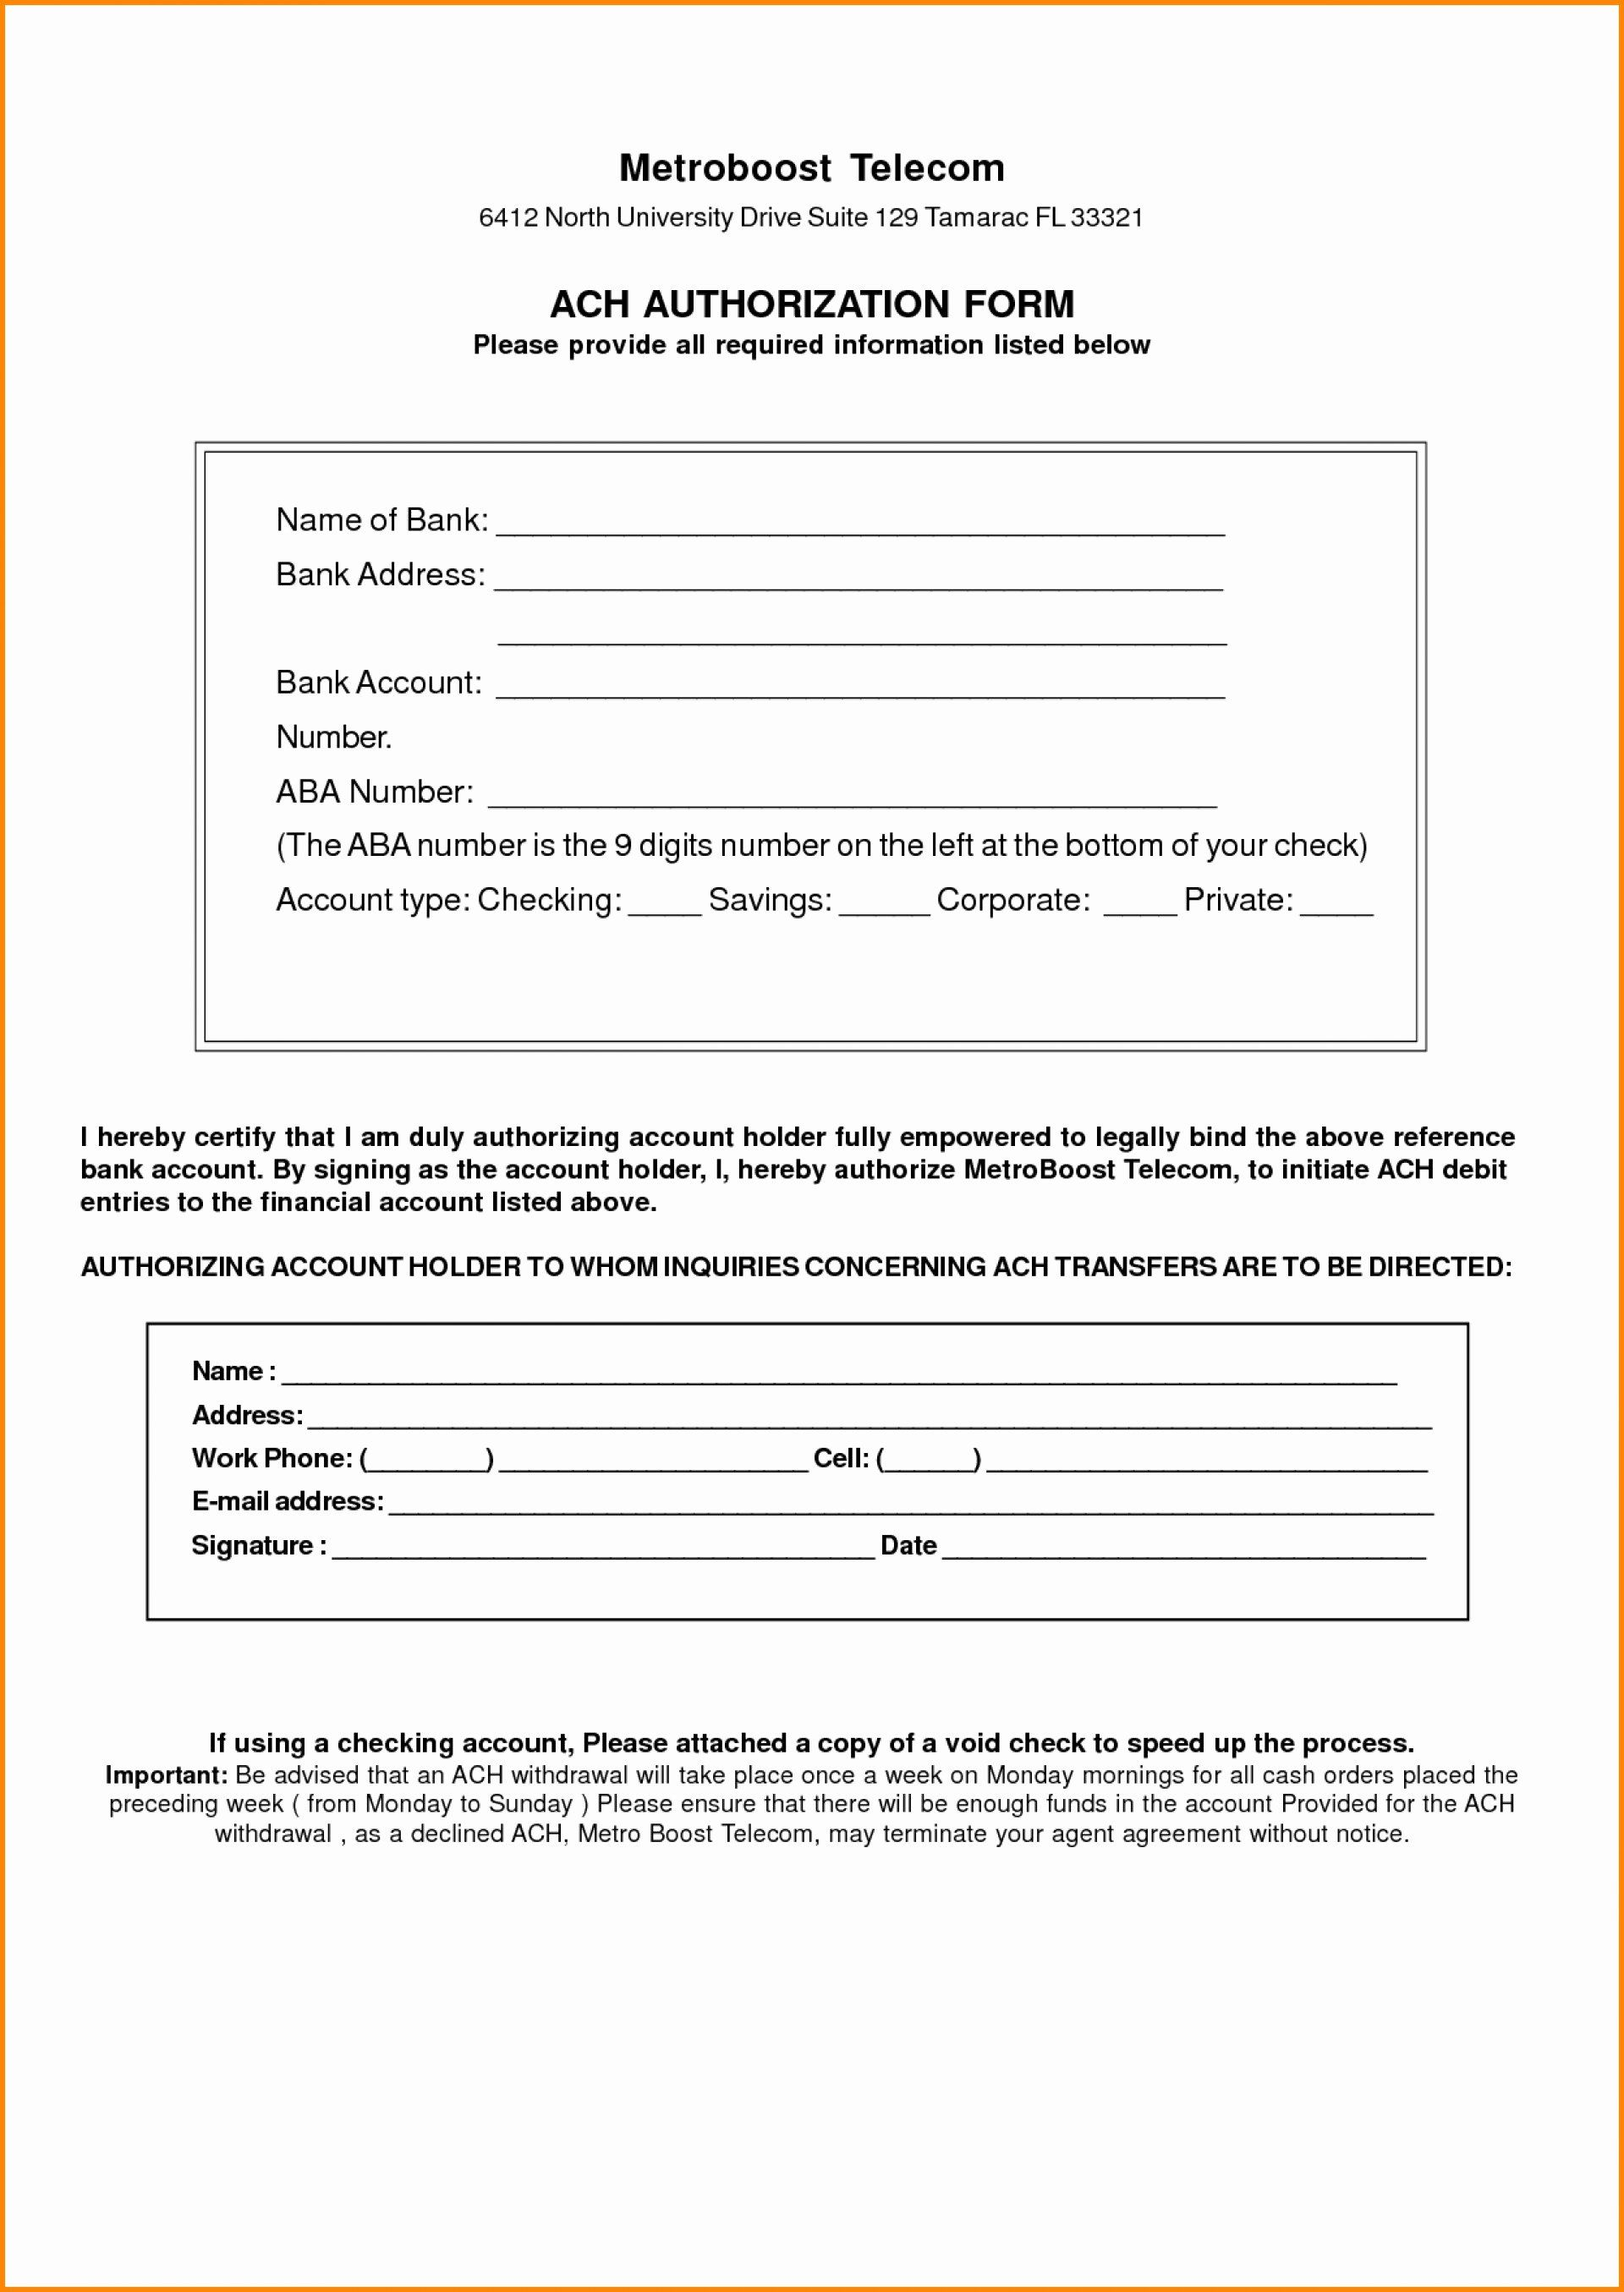 Ach Deposit Authorization Form Template Awesome Automated Clearing House Ach May 2011 Templates Marketing Plan Template Lesson Plan Template Free